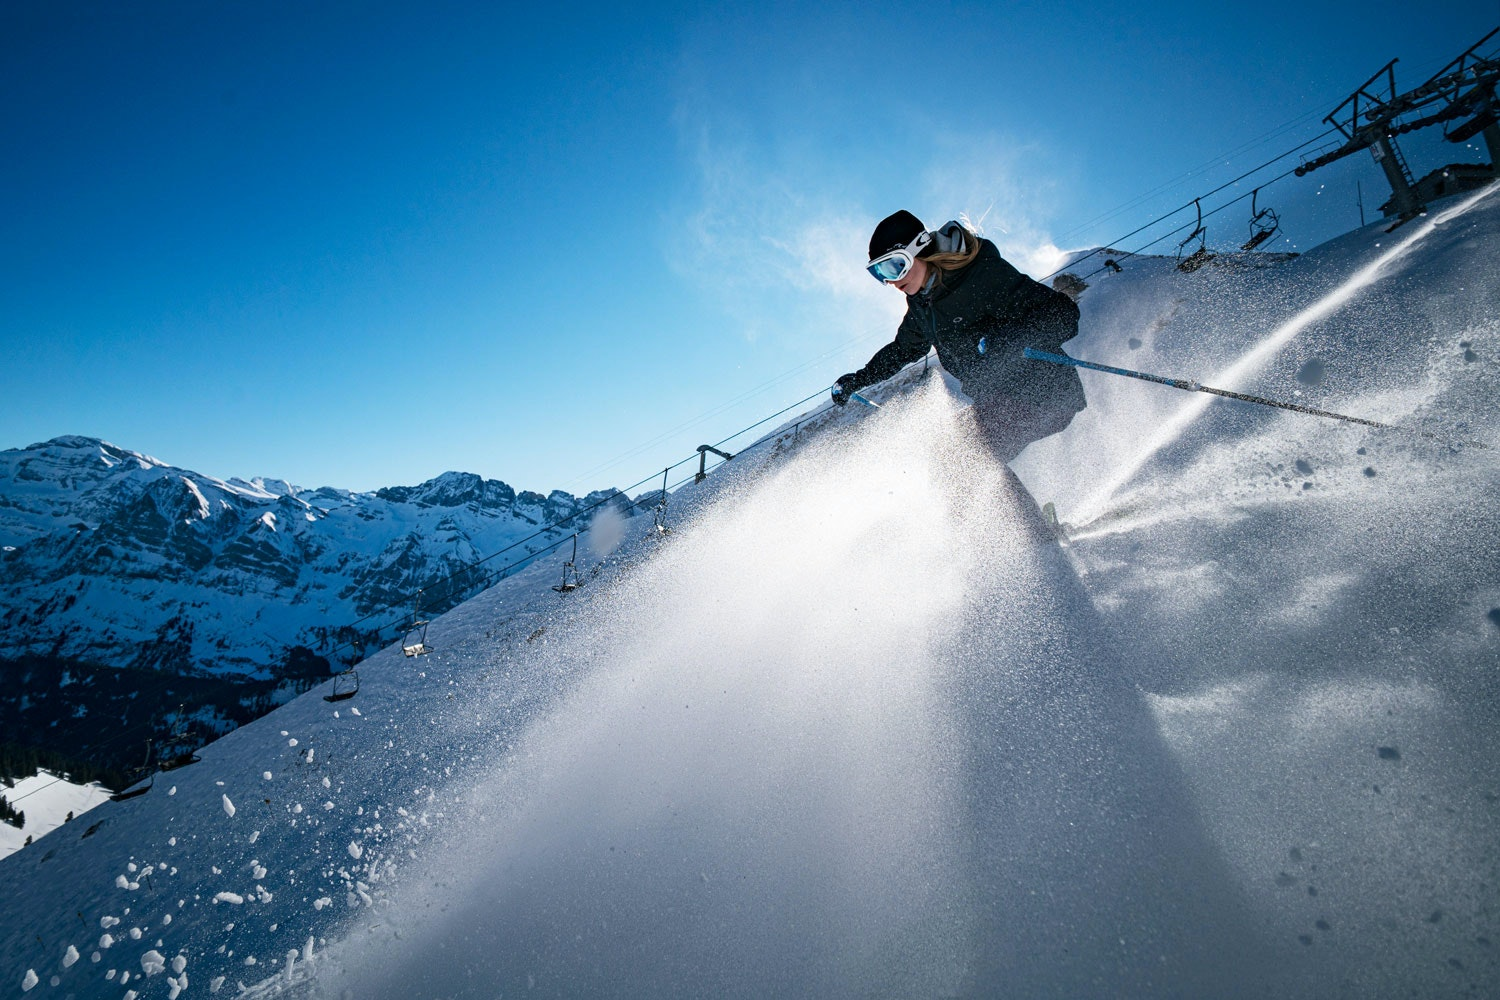 https://mpora.com/skiing/best-all-mountain-skis-2020-2021/